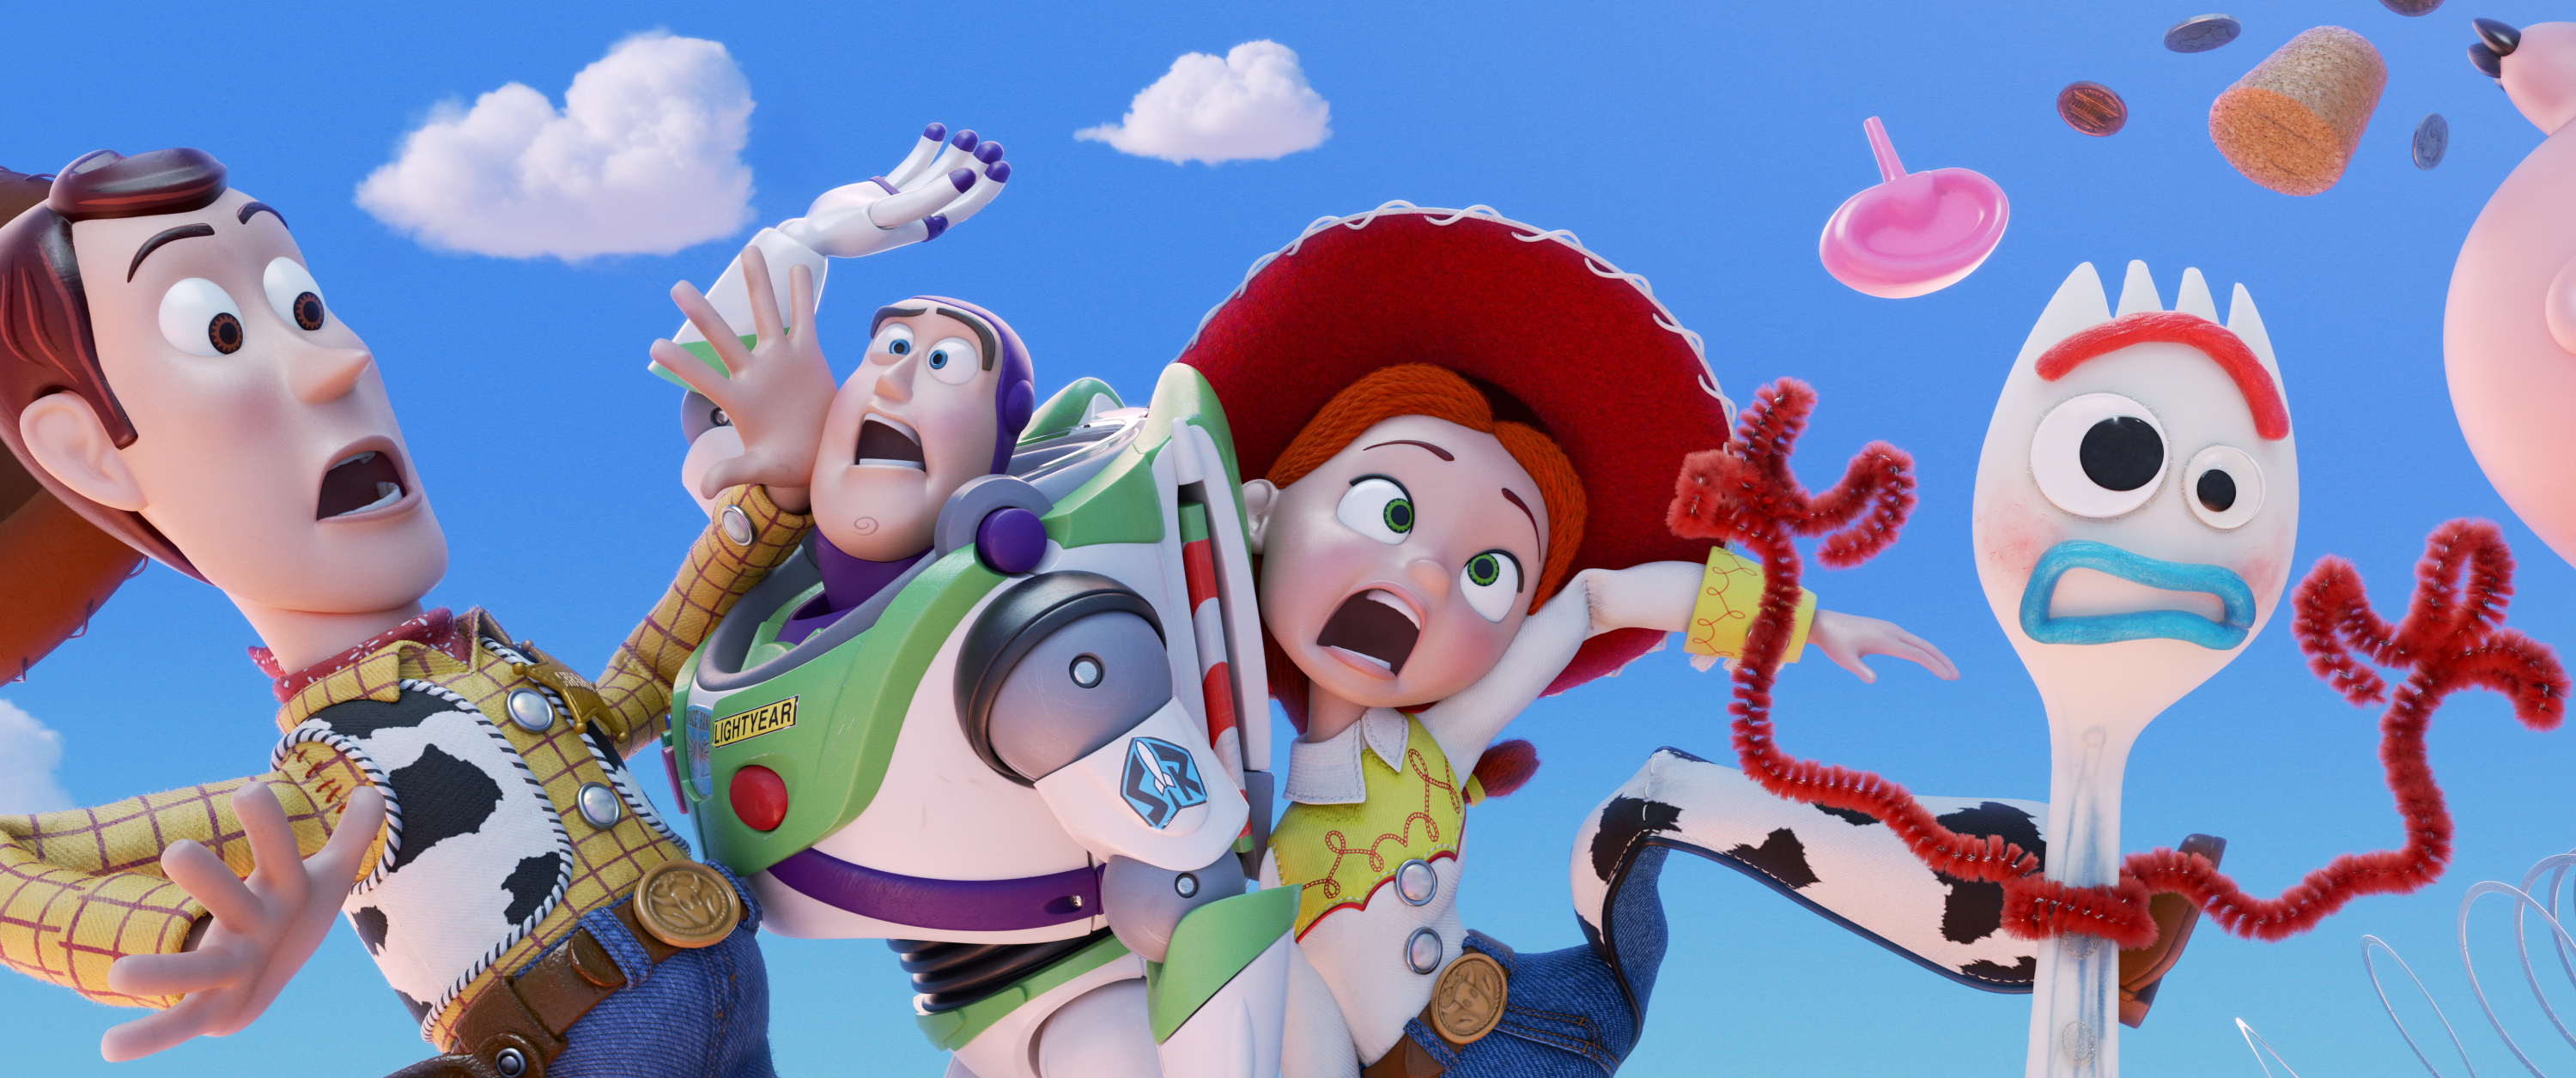 Review: 'Toy Story 4' a touching tale of purehearted beings in ...